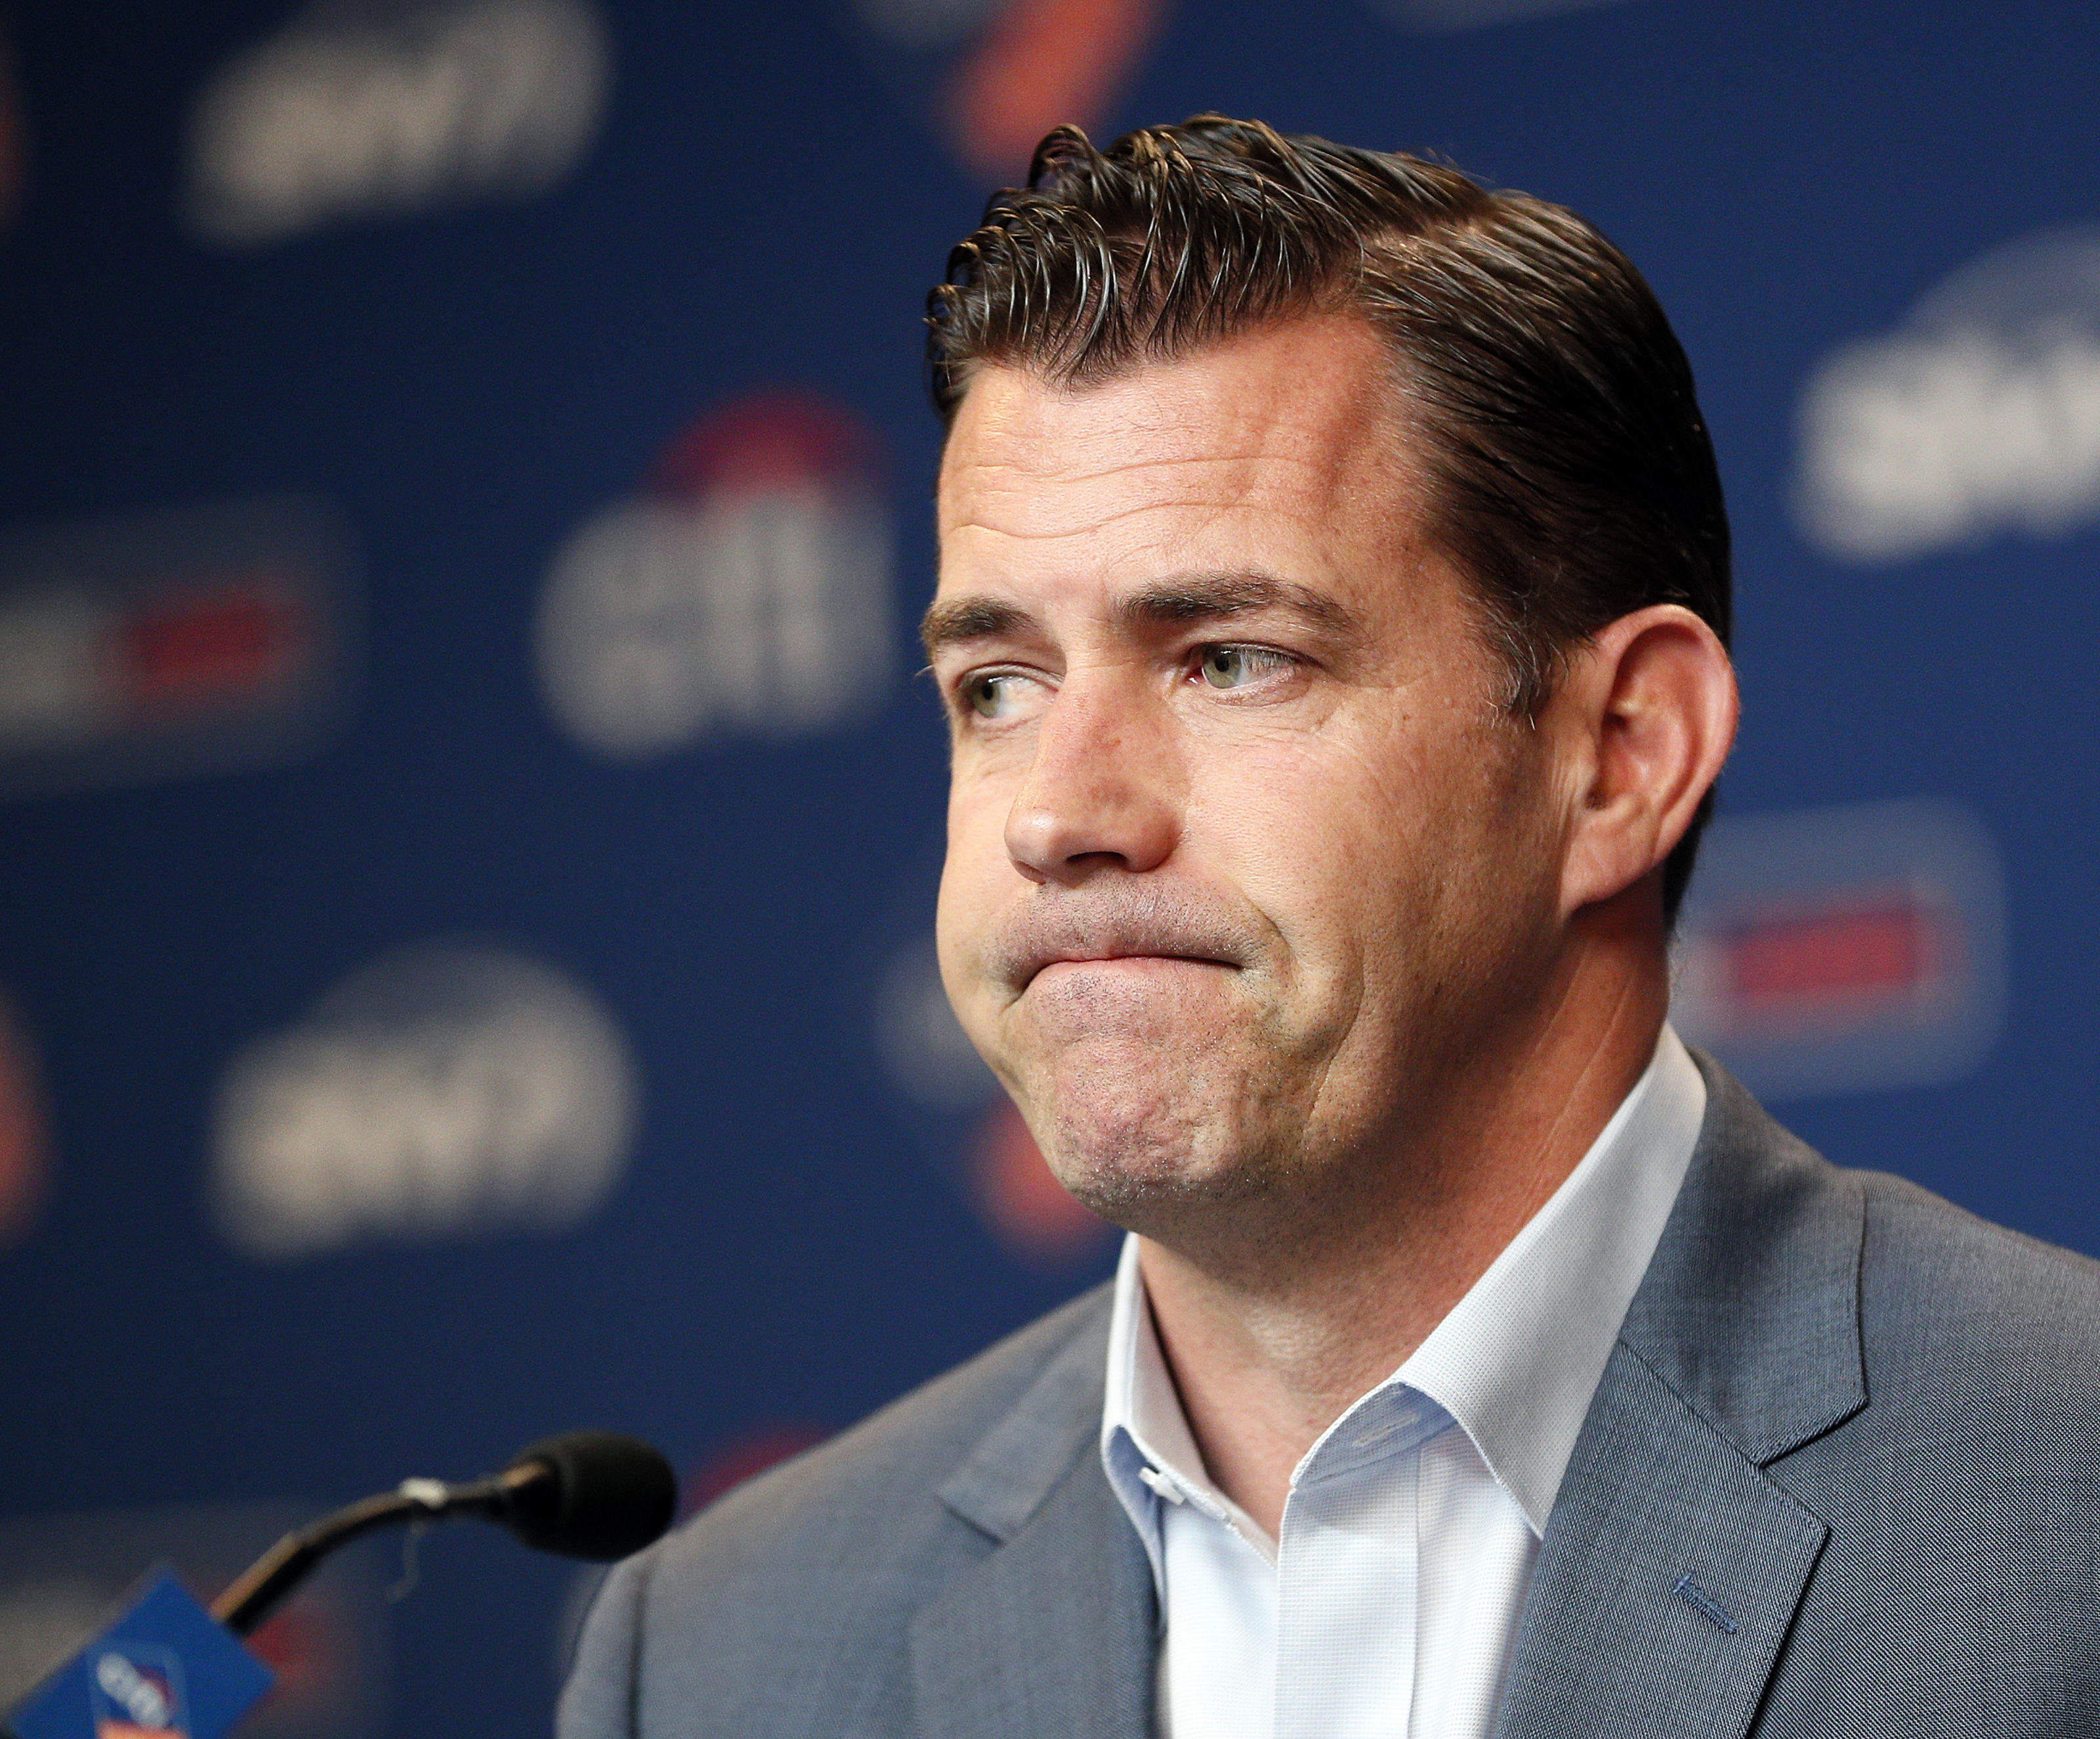 If the Mets fall out of contention this year they need to fully rebuild